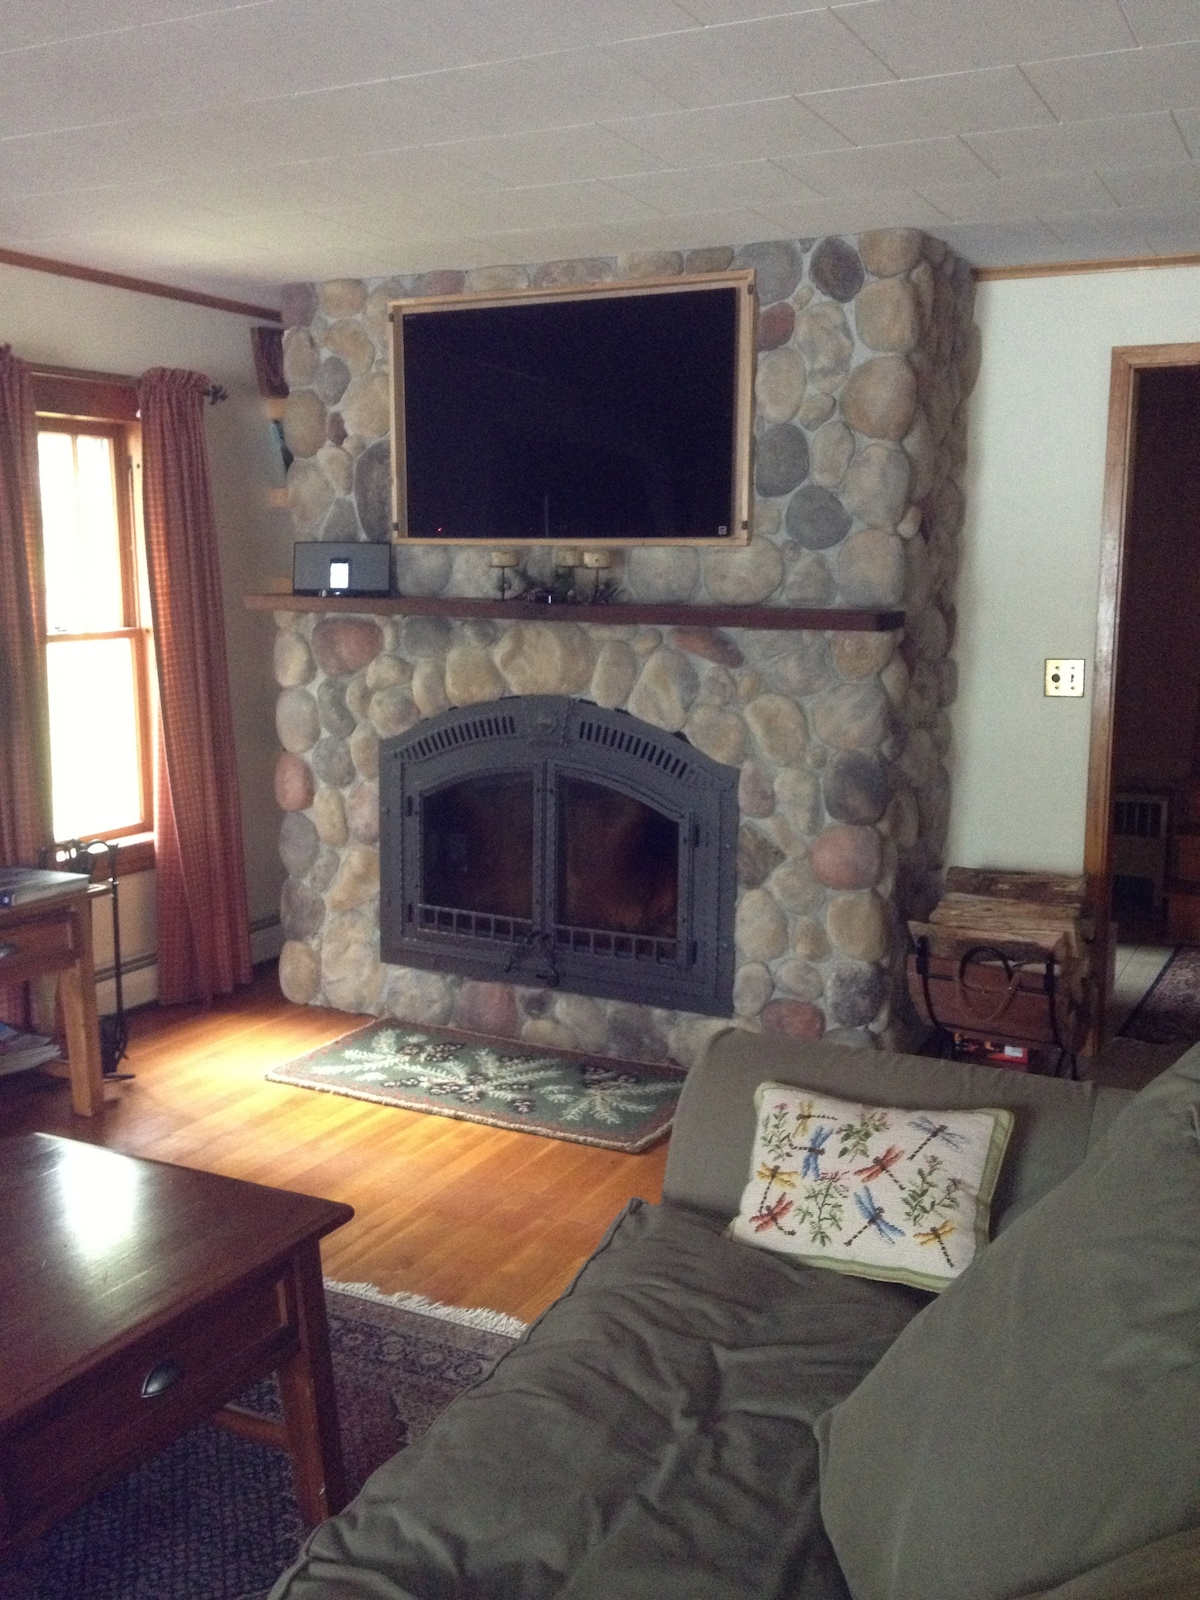 Wood burning fireplace with TV over mantle